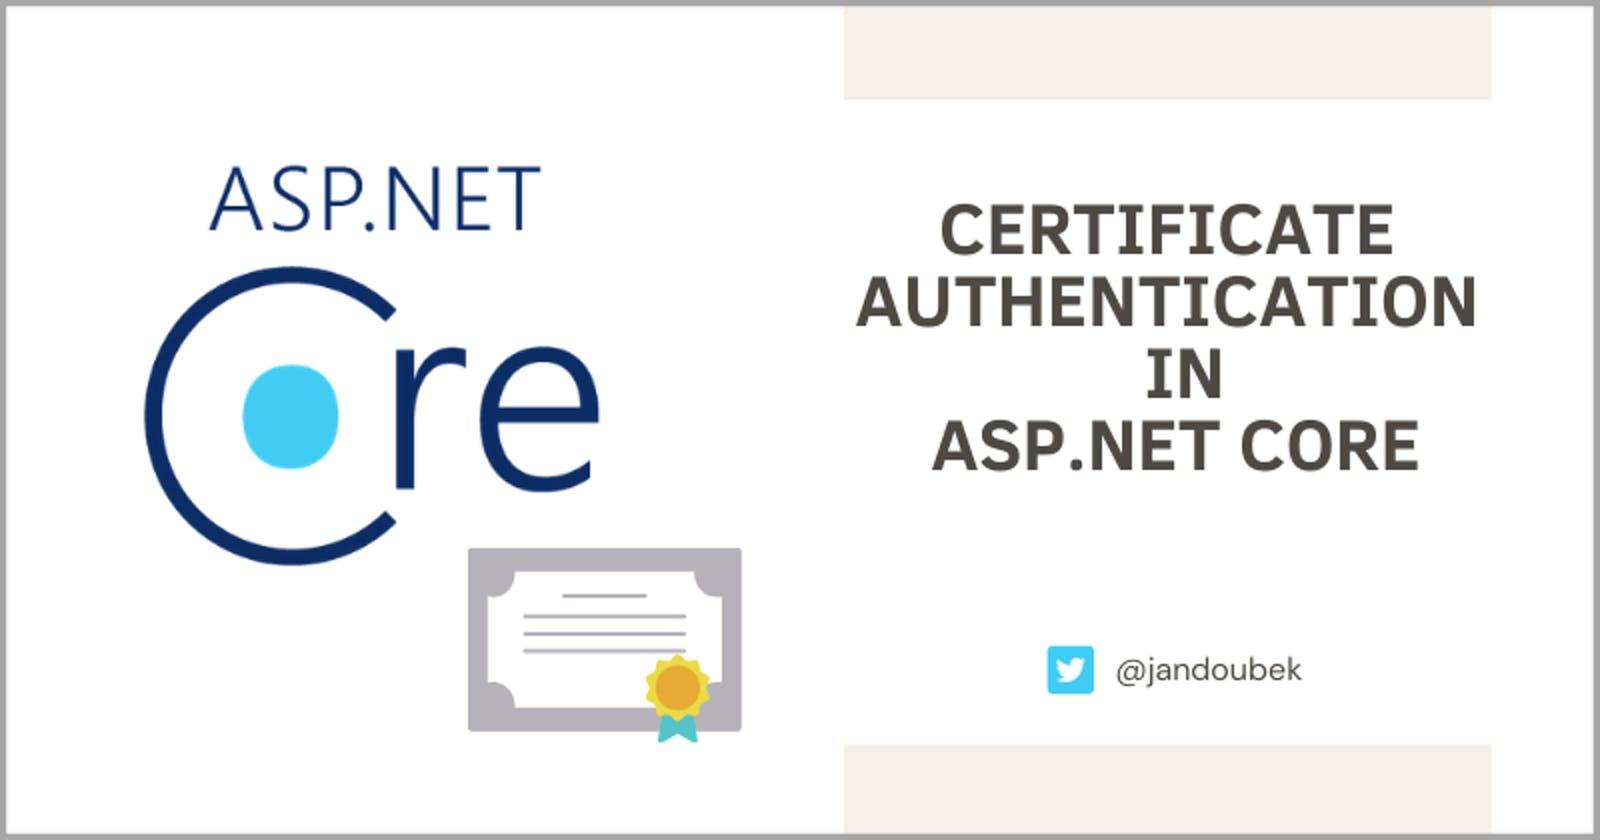 3 Easy Steps to Set Up Certificate Authentication in ASP.NET Core